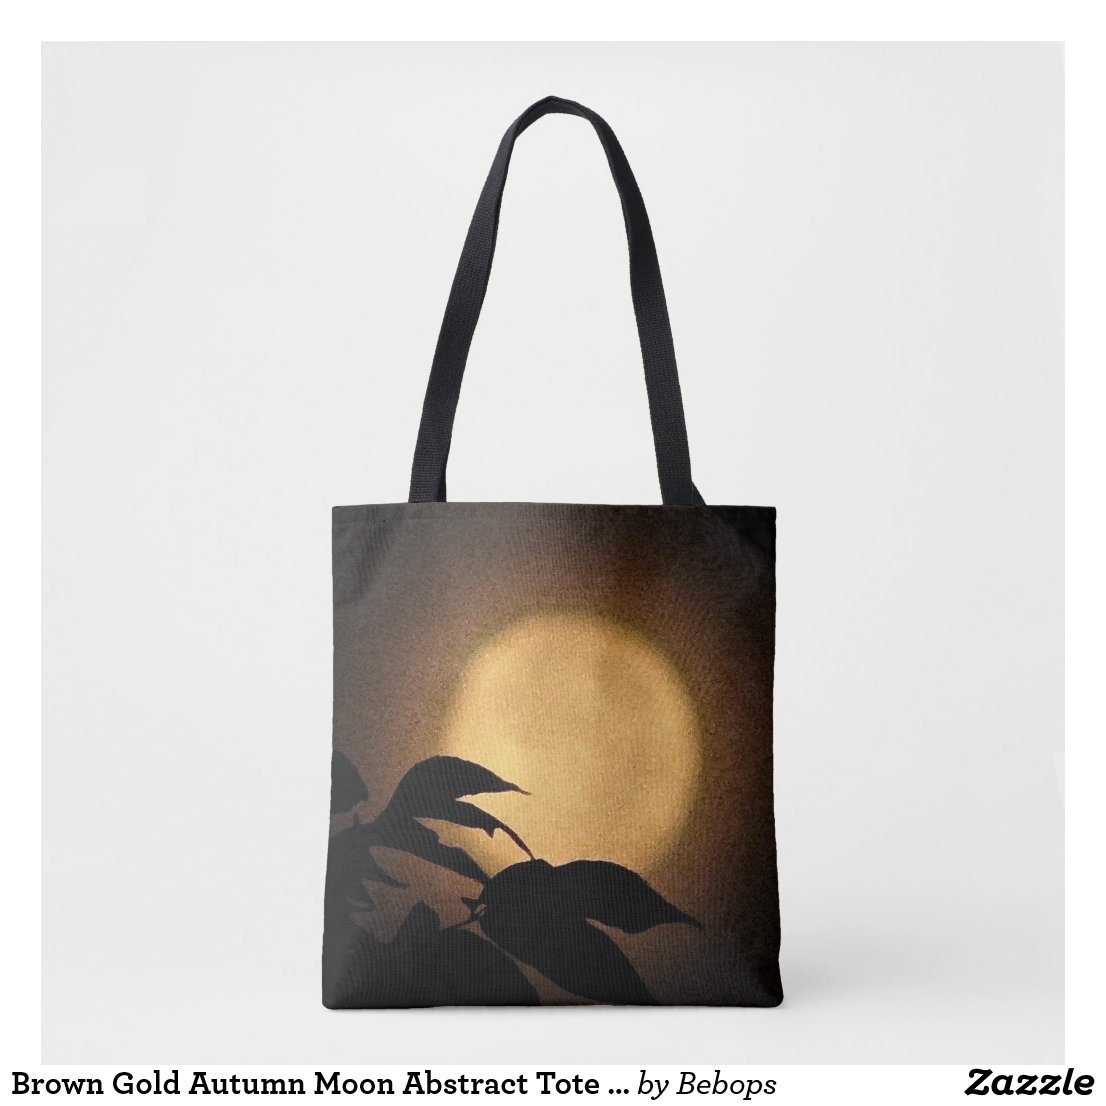 Brown Gold Autumn Moon Abstract Tote Bag